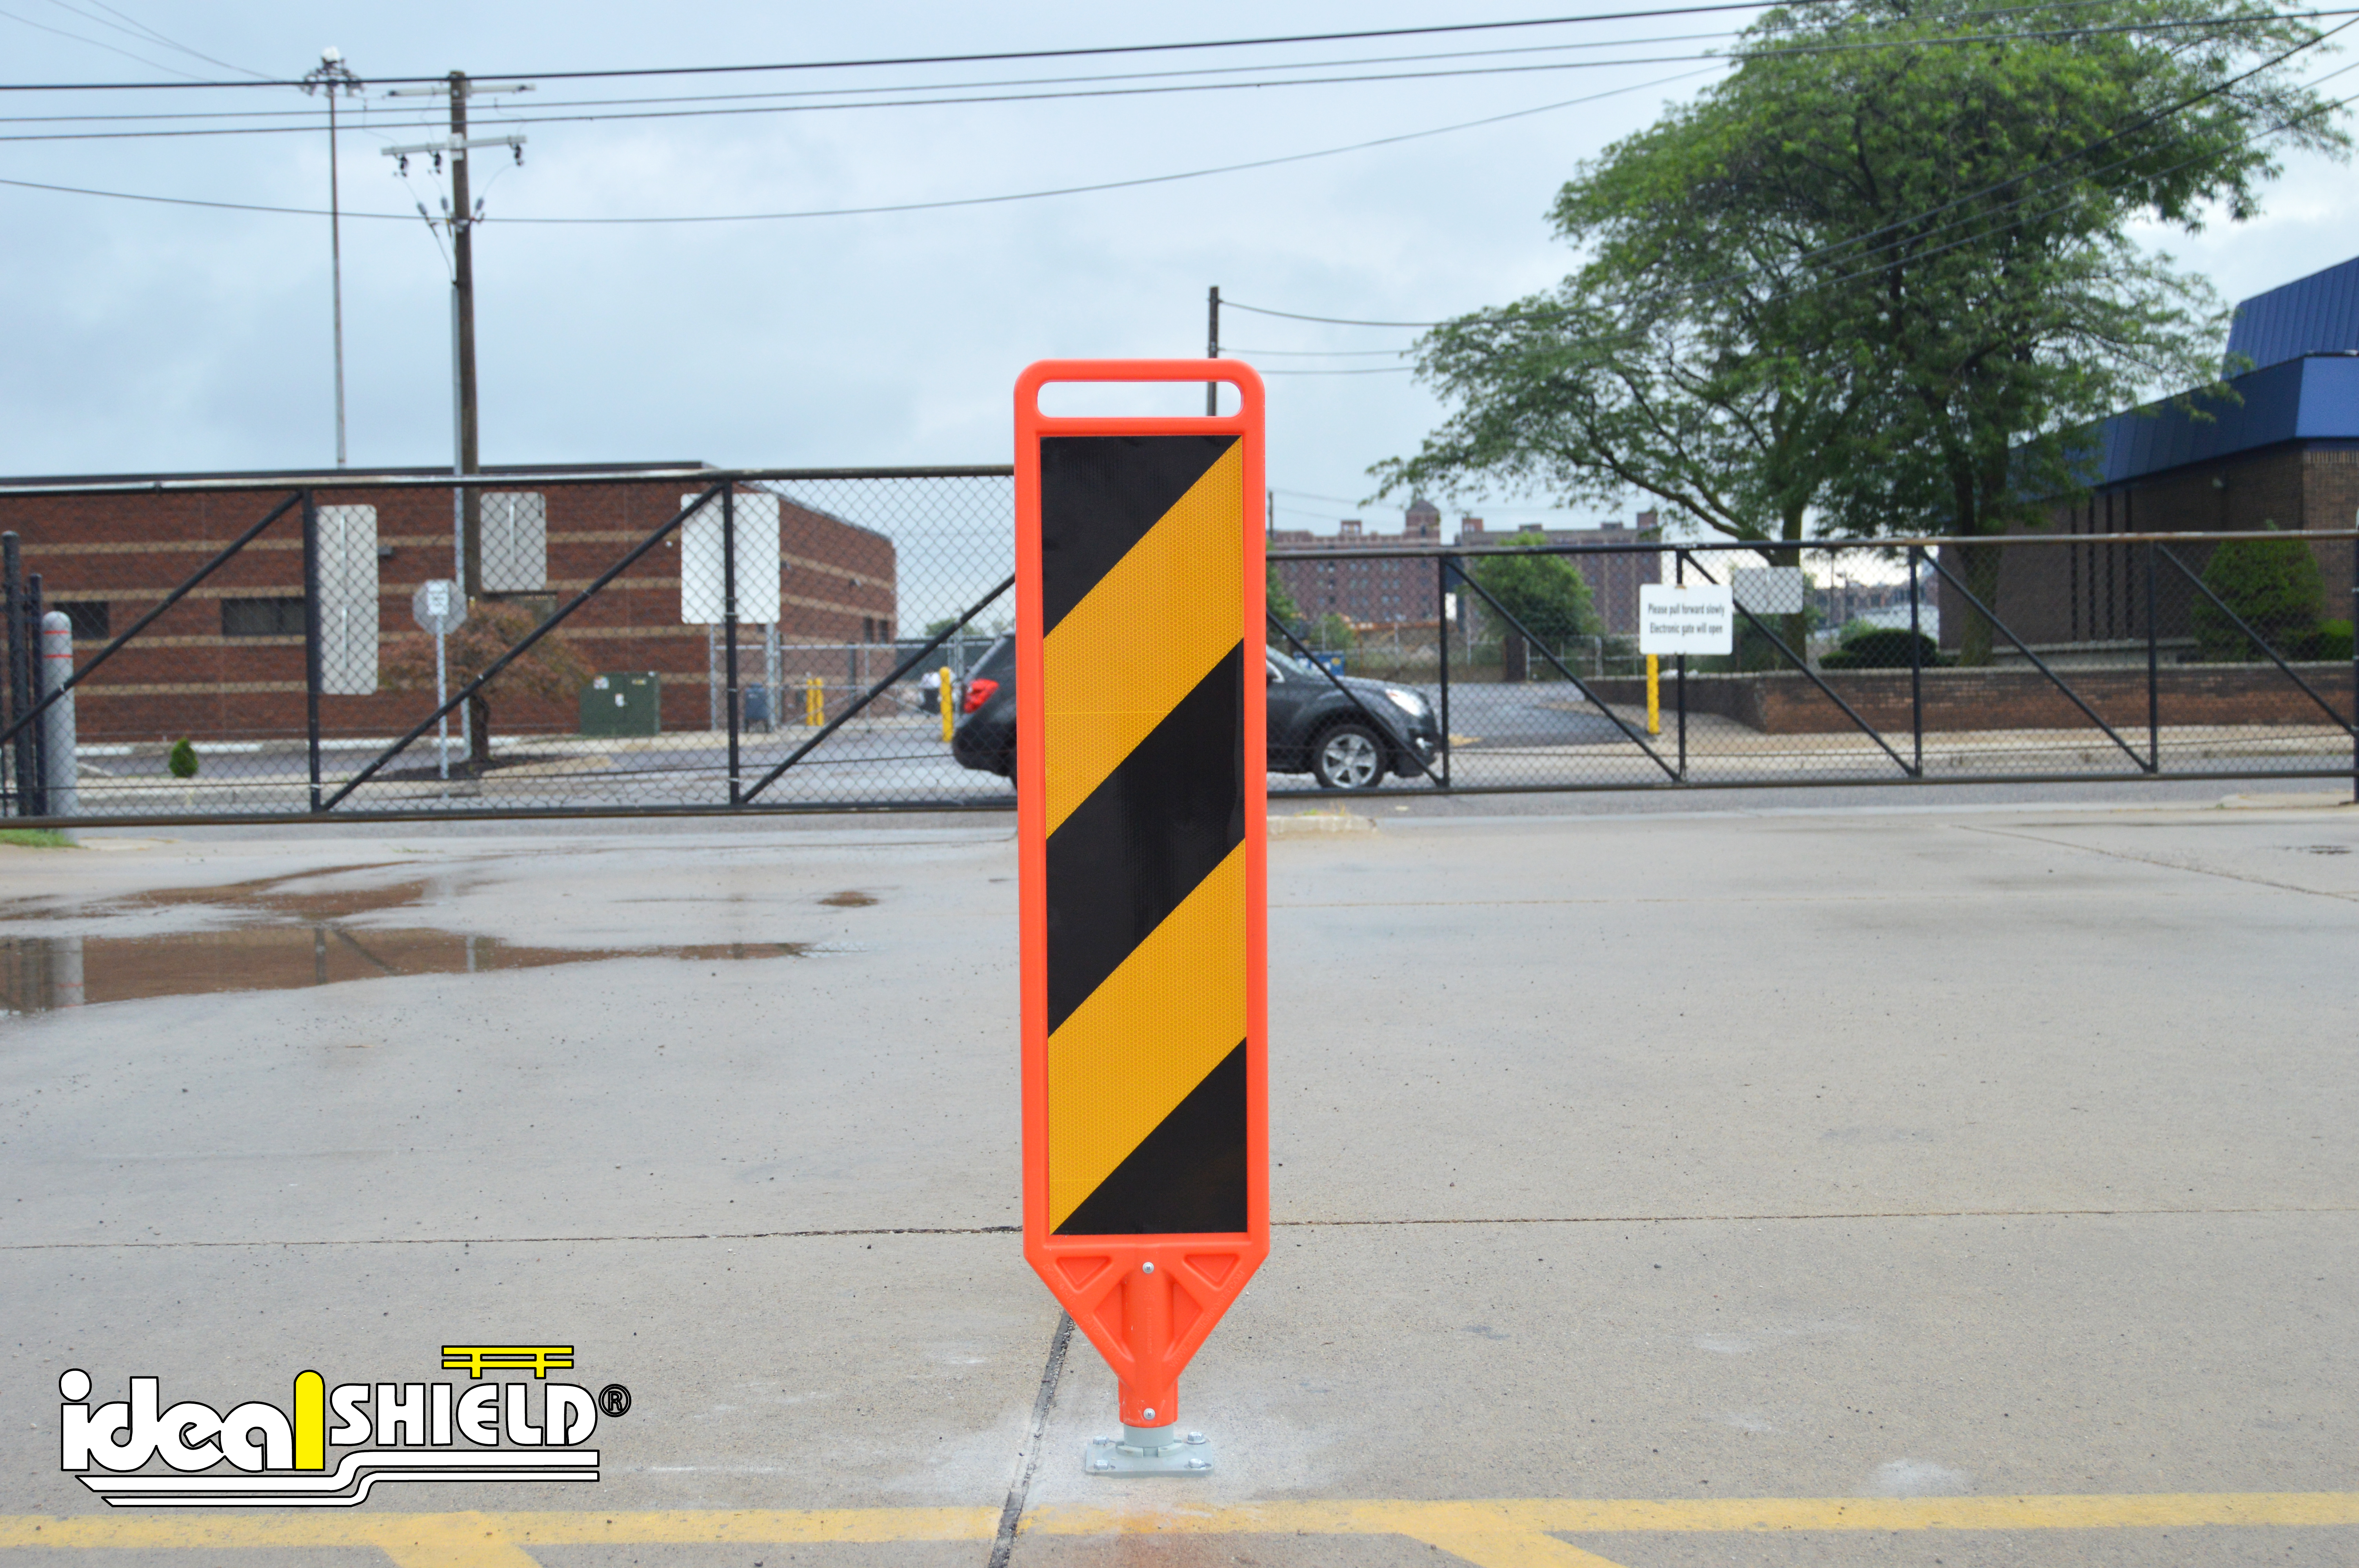 Ideal Shield's Removable Delineator Paddle for crosswalk